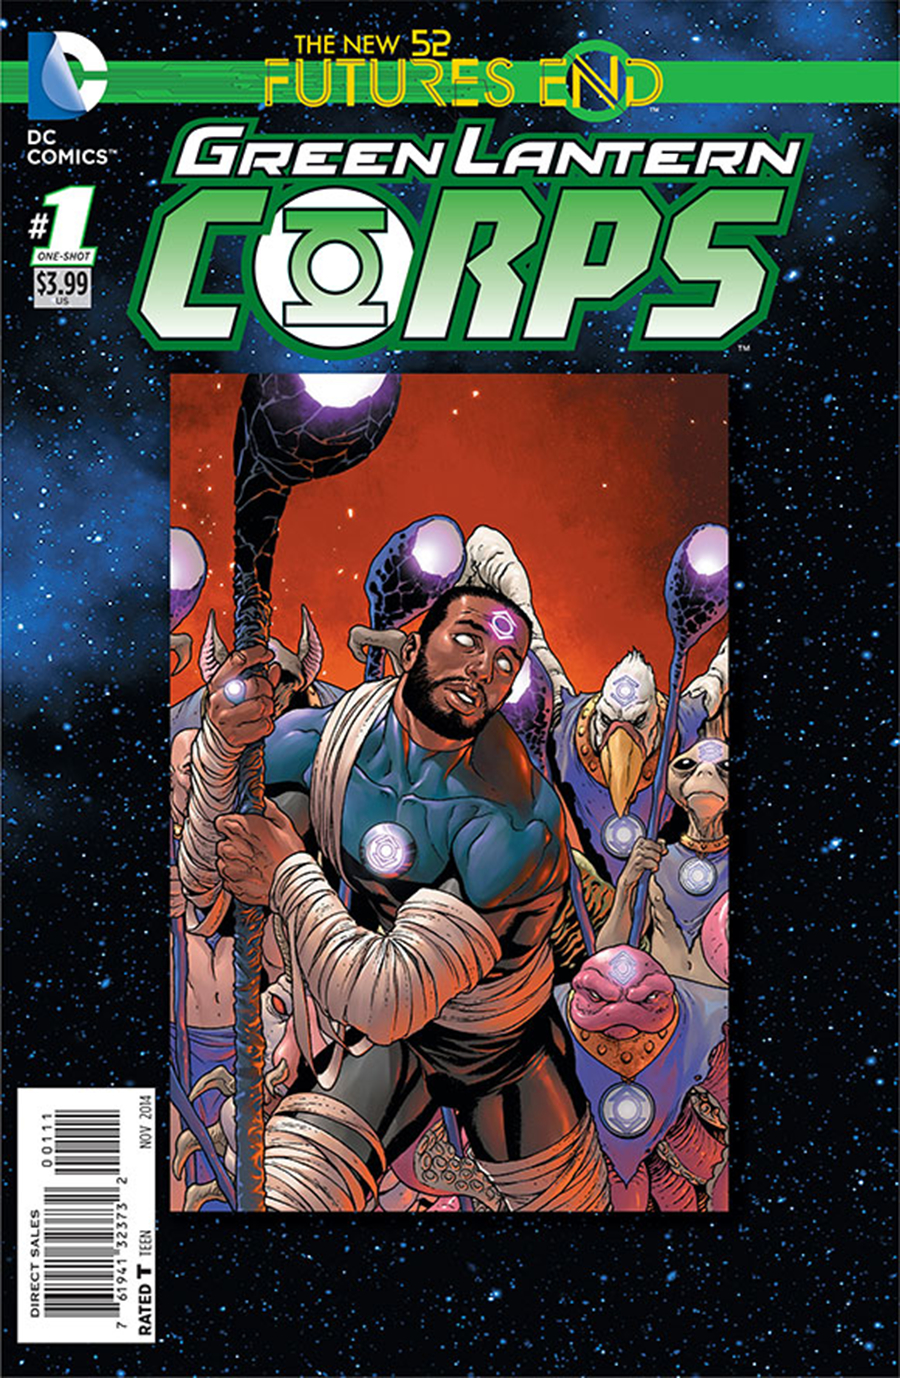 GREEN LANTERN CORPS FUTURES END #1